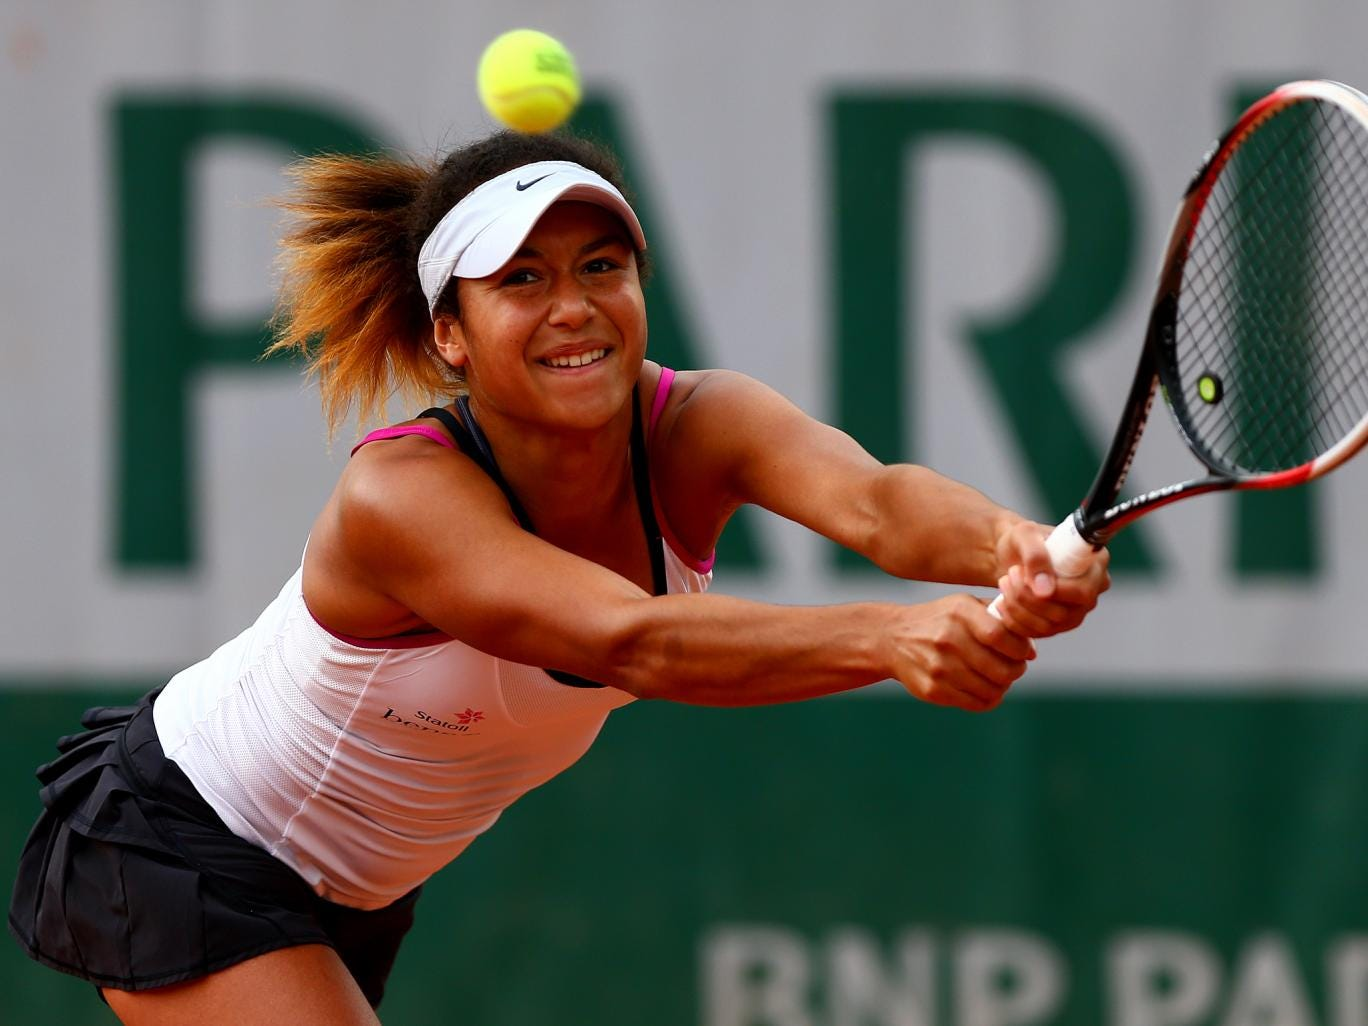 Heather Watson of Great Britain returns a shot in her women's singles qualifying match against Anett Kontaveit of Estonia during previews ahead of the French Open